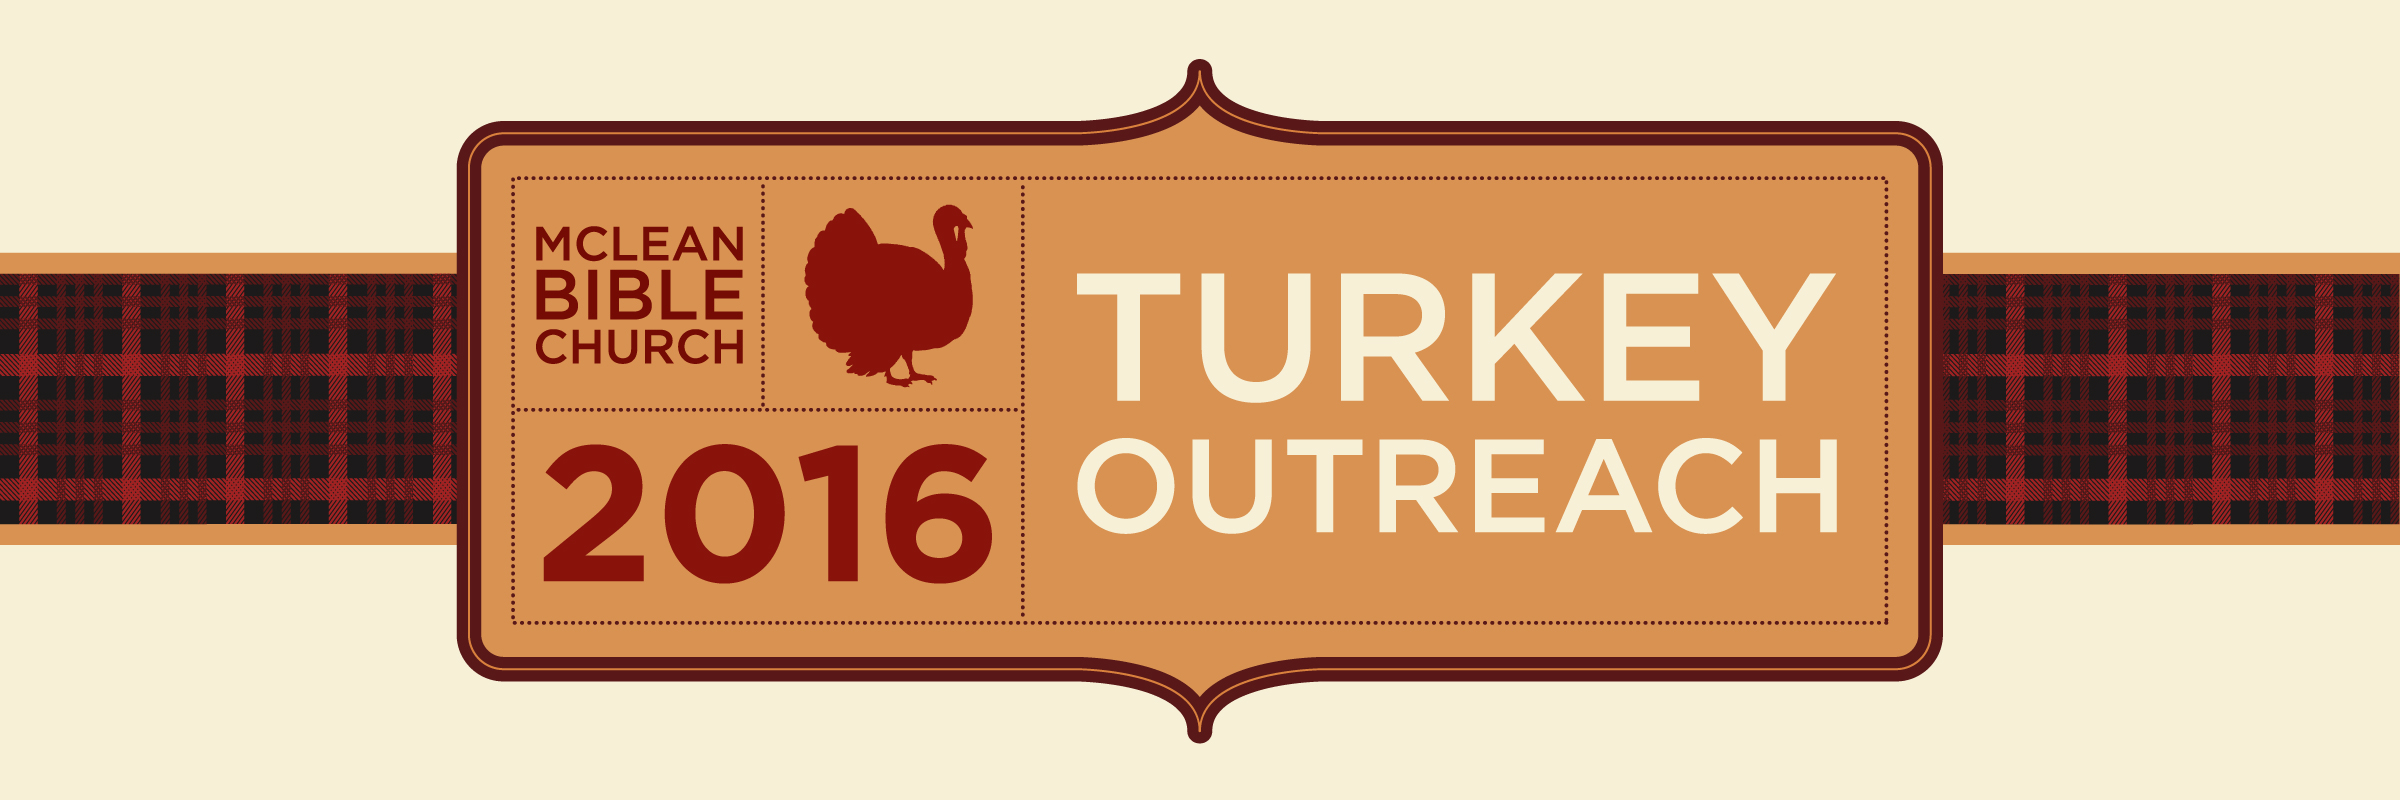 2016 turkey outreach clipart graphic black and white McLean Bible Church graphic black and white